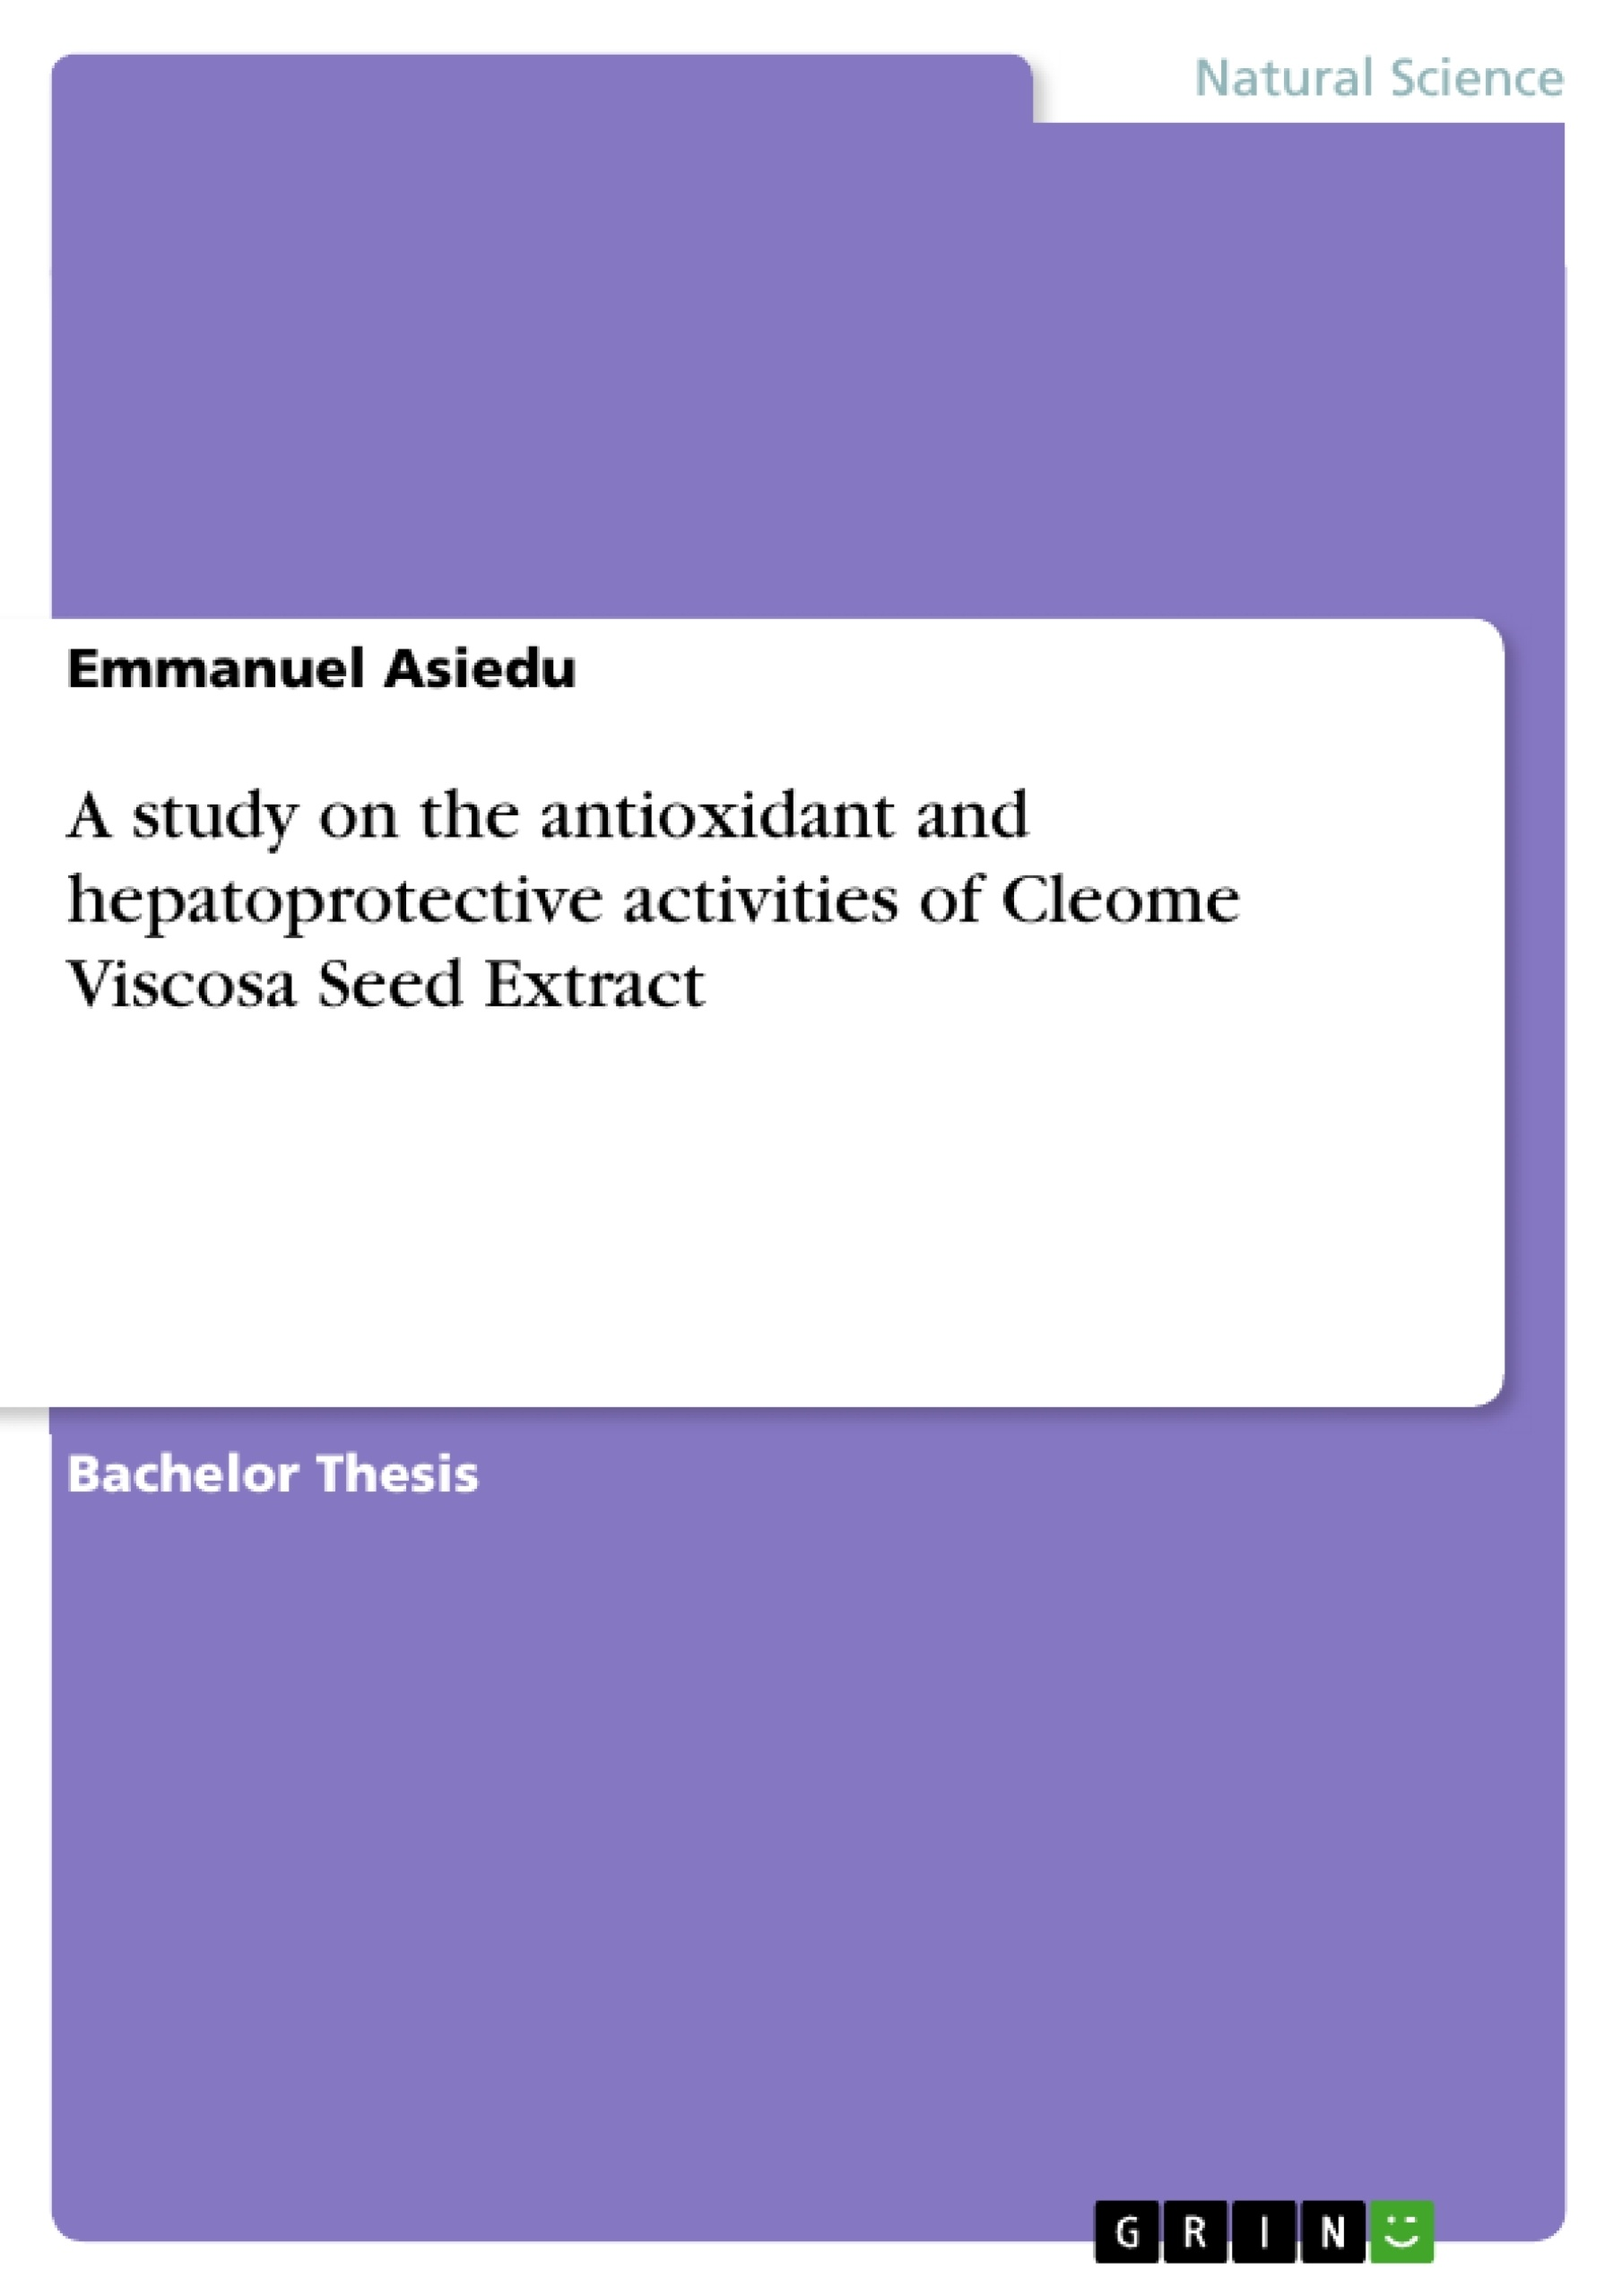 Title: A study on the antioxidant and hepatoprotective activities of Cleome Viscosa Seed Extract